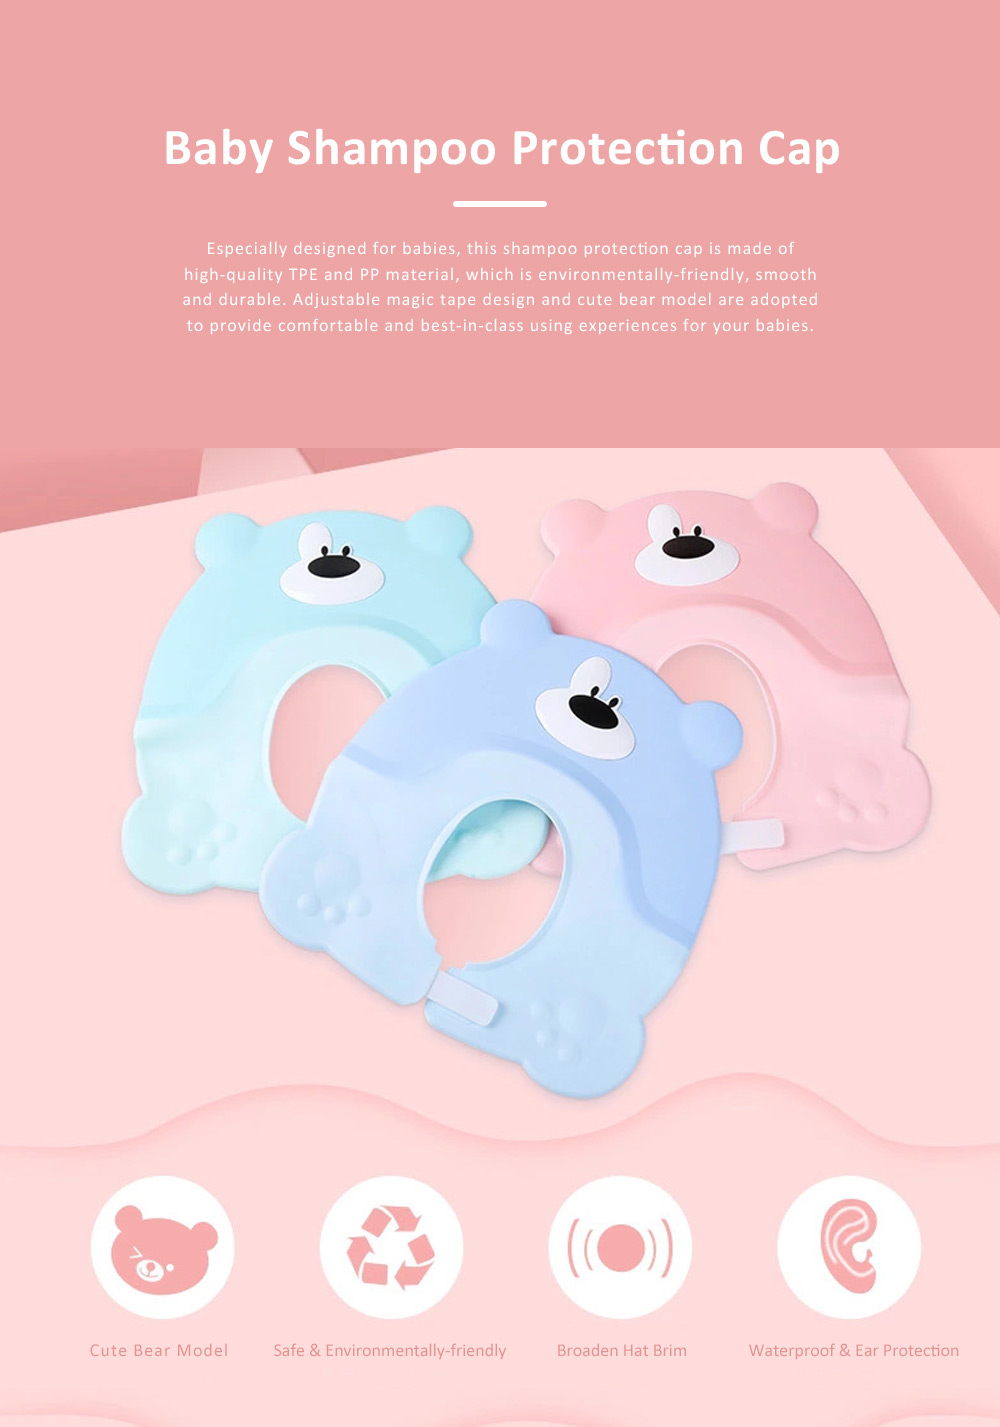 Baby Shampoo Cap for Infant, Toddlers, Newborns, Adjustable Elastic Baby Shower Bathing Ear Eye Protection Cap, Soft TPE PP Safe Shampoo Hat for Baby Children 0